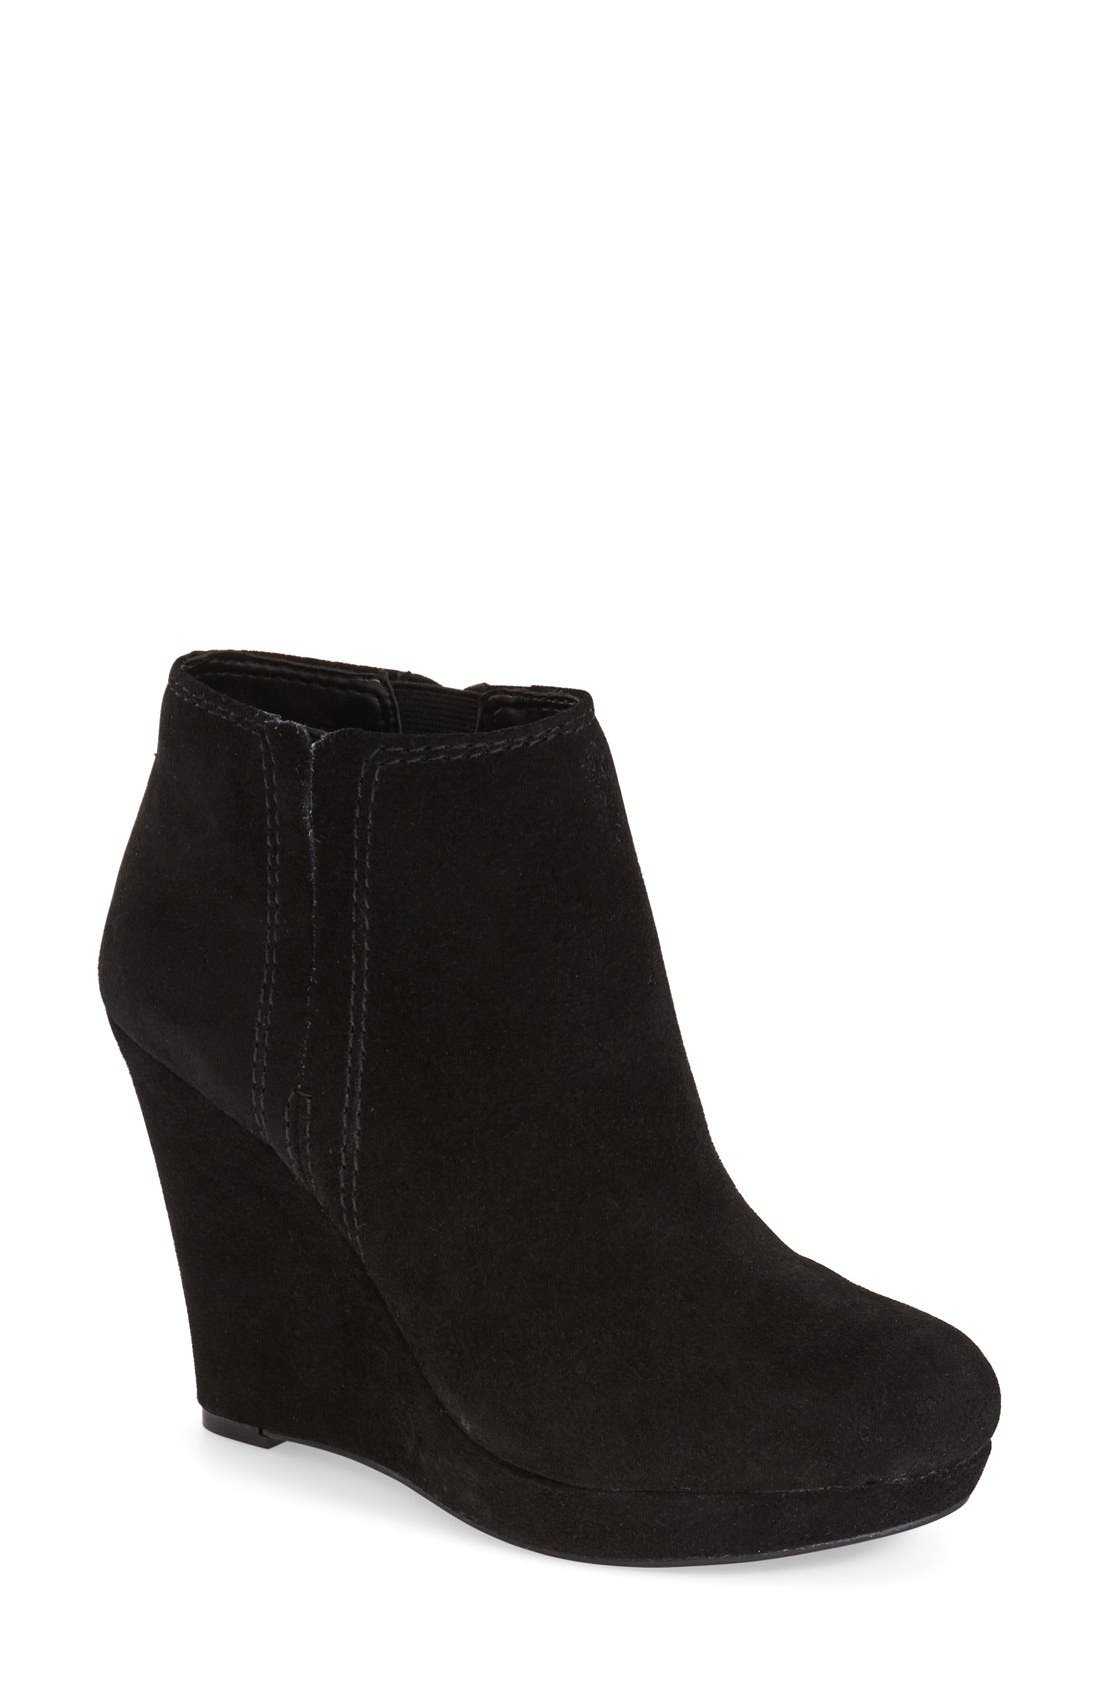 'Calwell' Wedge Bootie,                             Main thumbnail 1, color,                             001